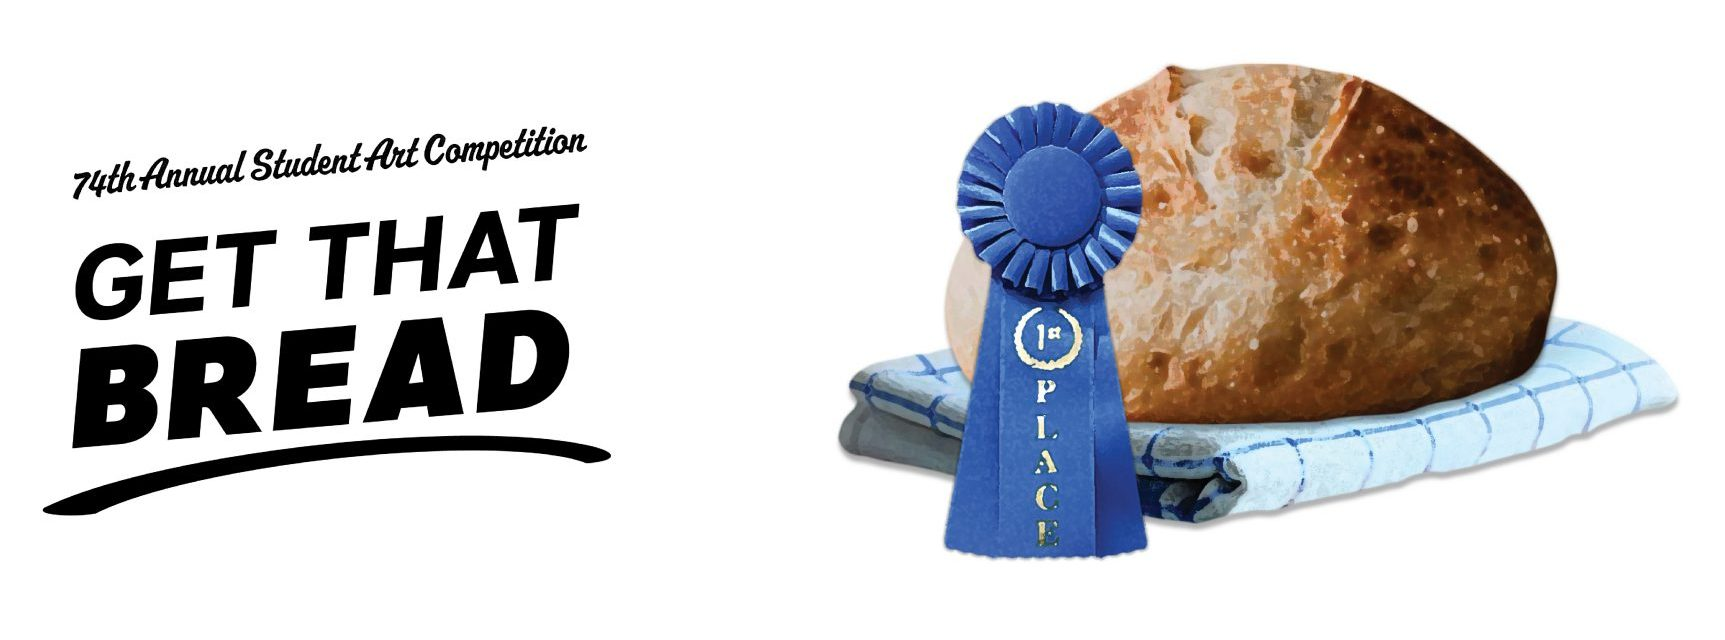 74th Annual Student Art Competition Award Winners